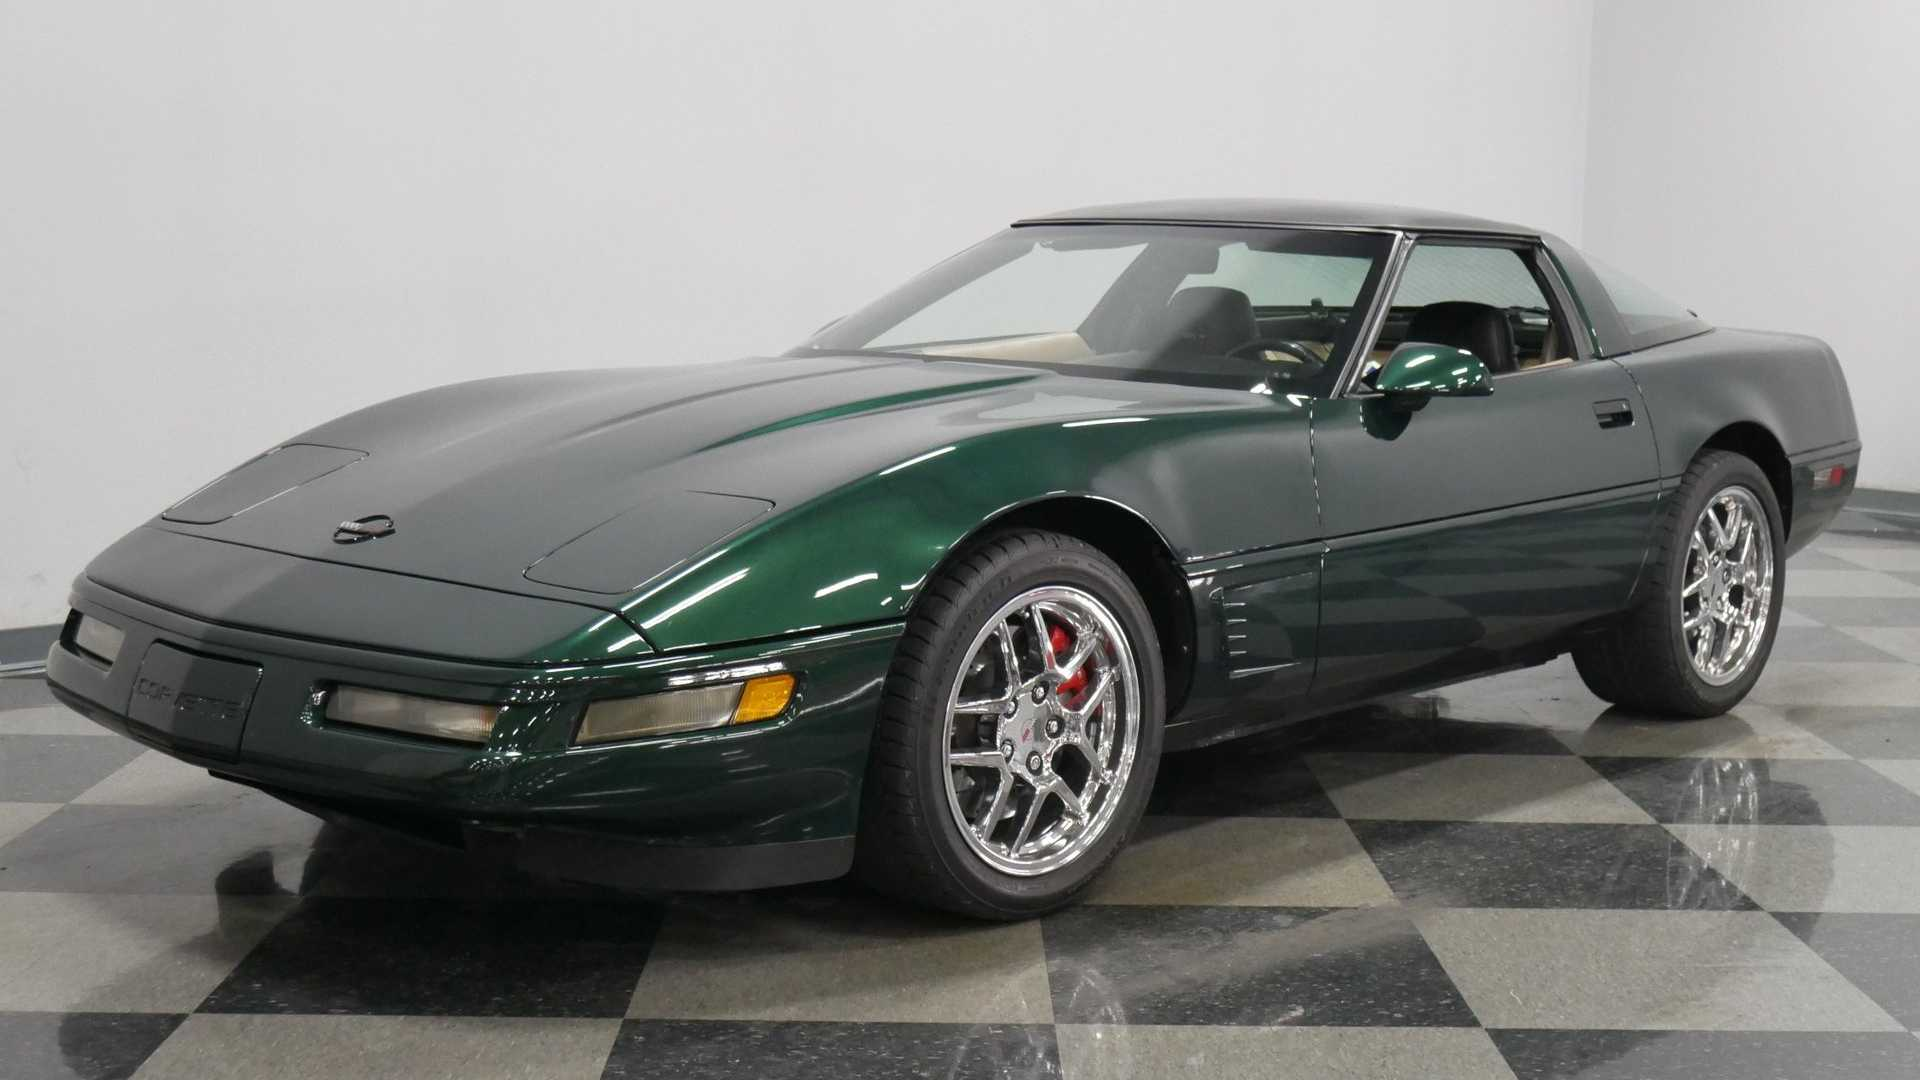 Polo Green 1995 Chevrolet Corvette C4 Is A Real Winner